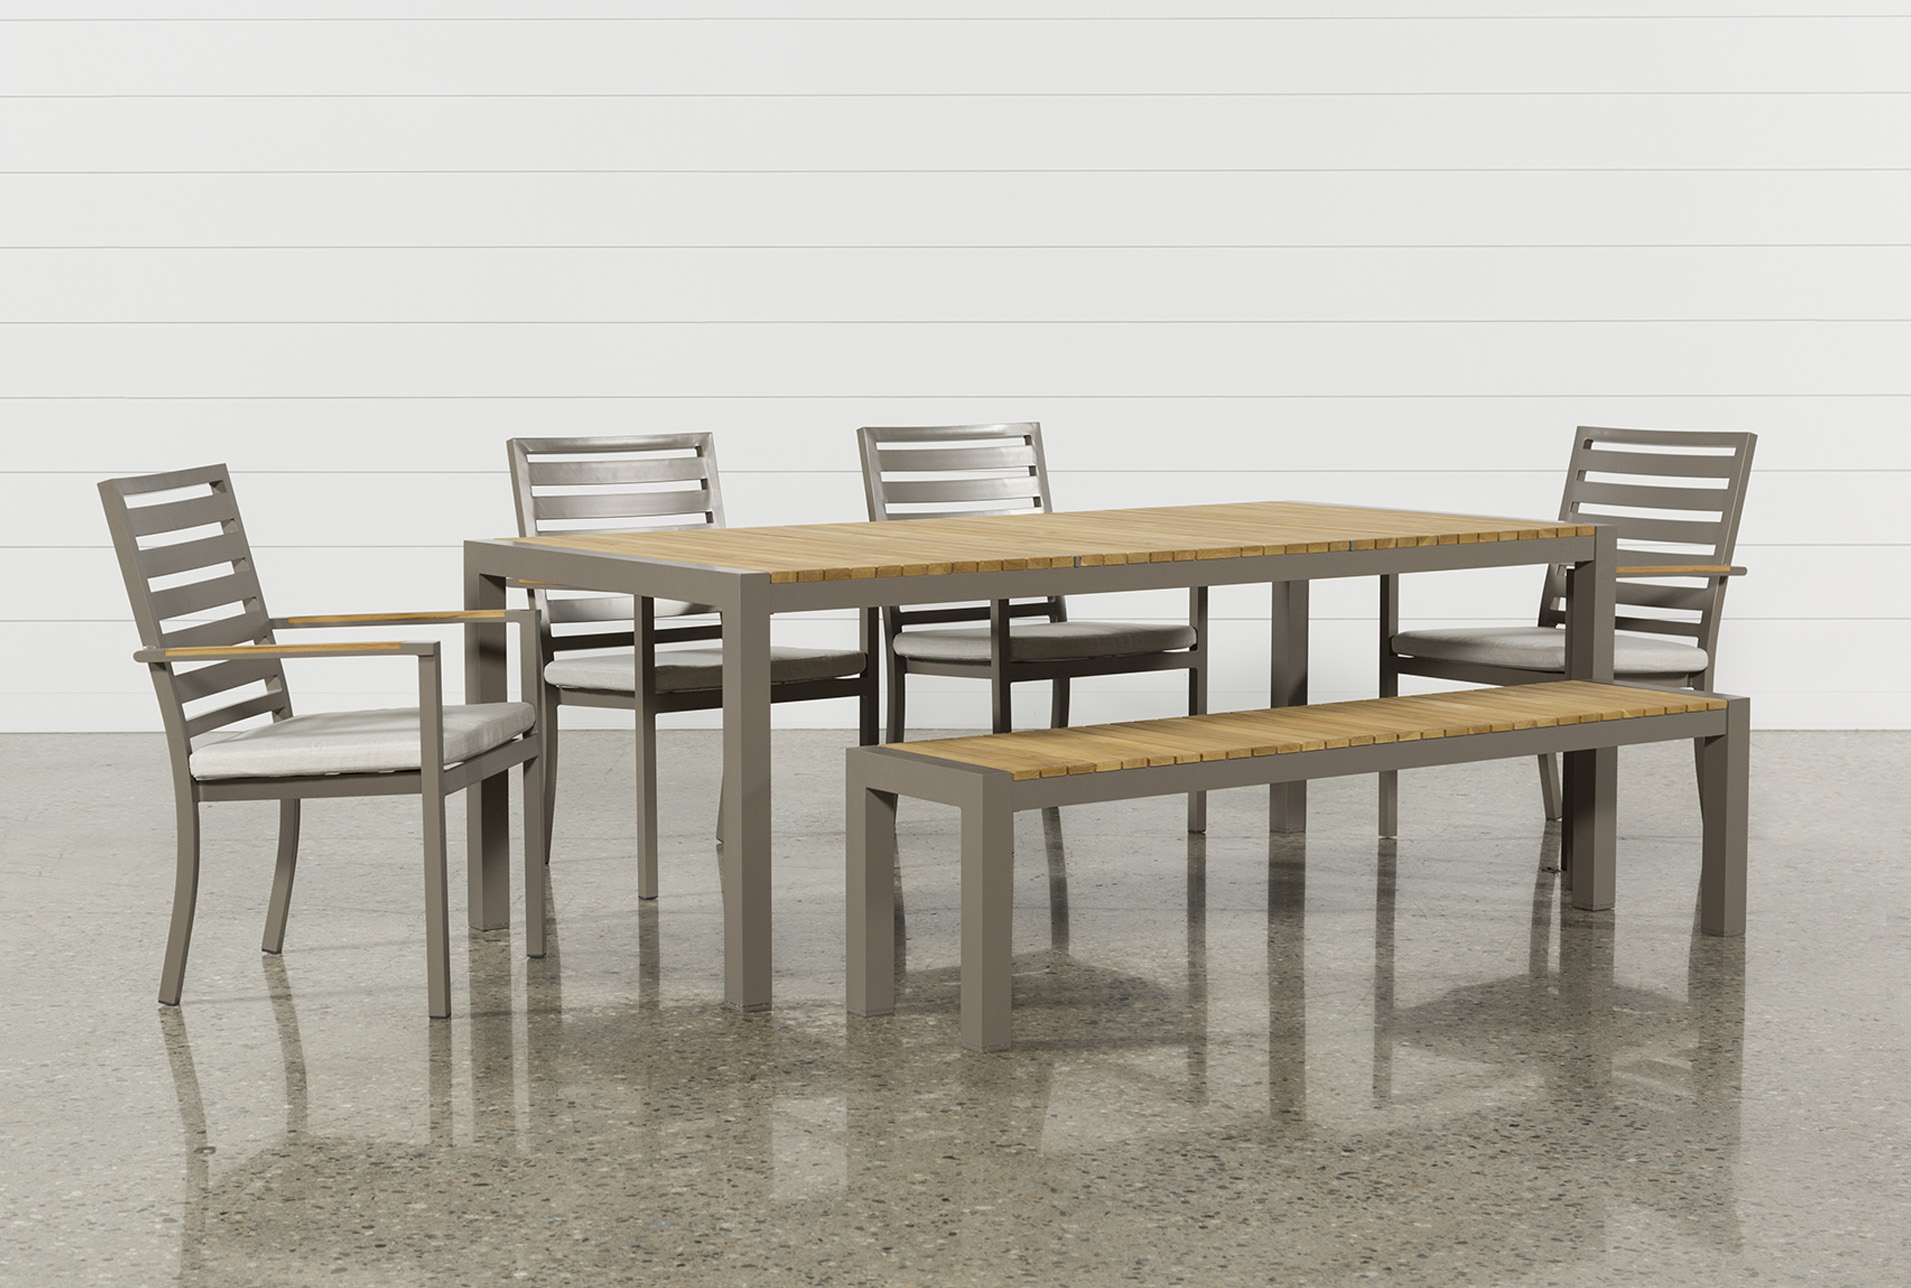 Outdoor Brasilia Teak Dining Table With 4 Chairs And 1 Bench (Qty: 1) Has  Been Successfully Added To Your Cart.